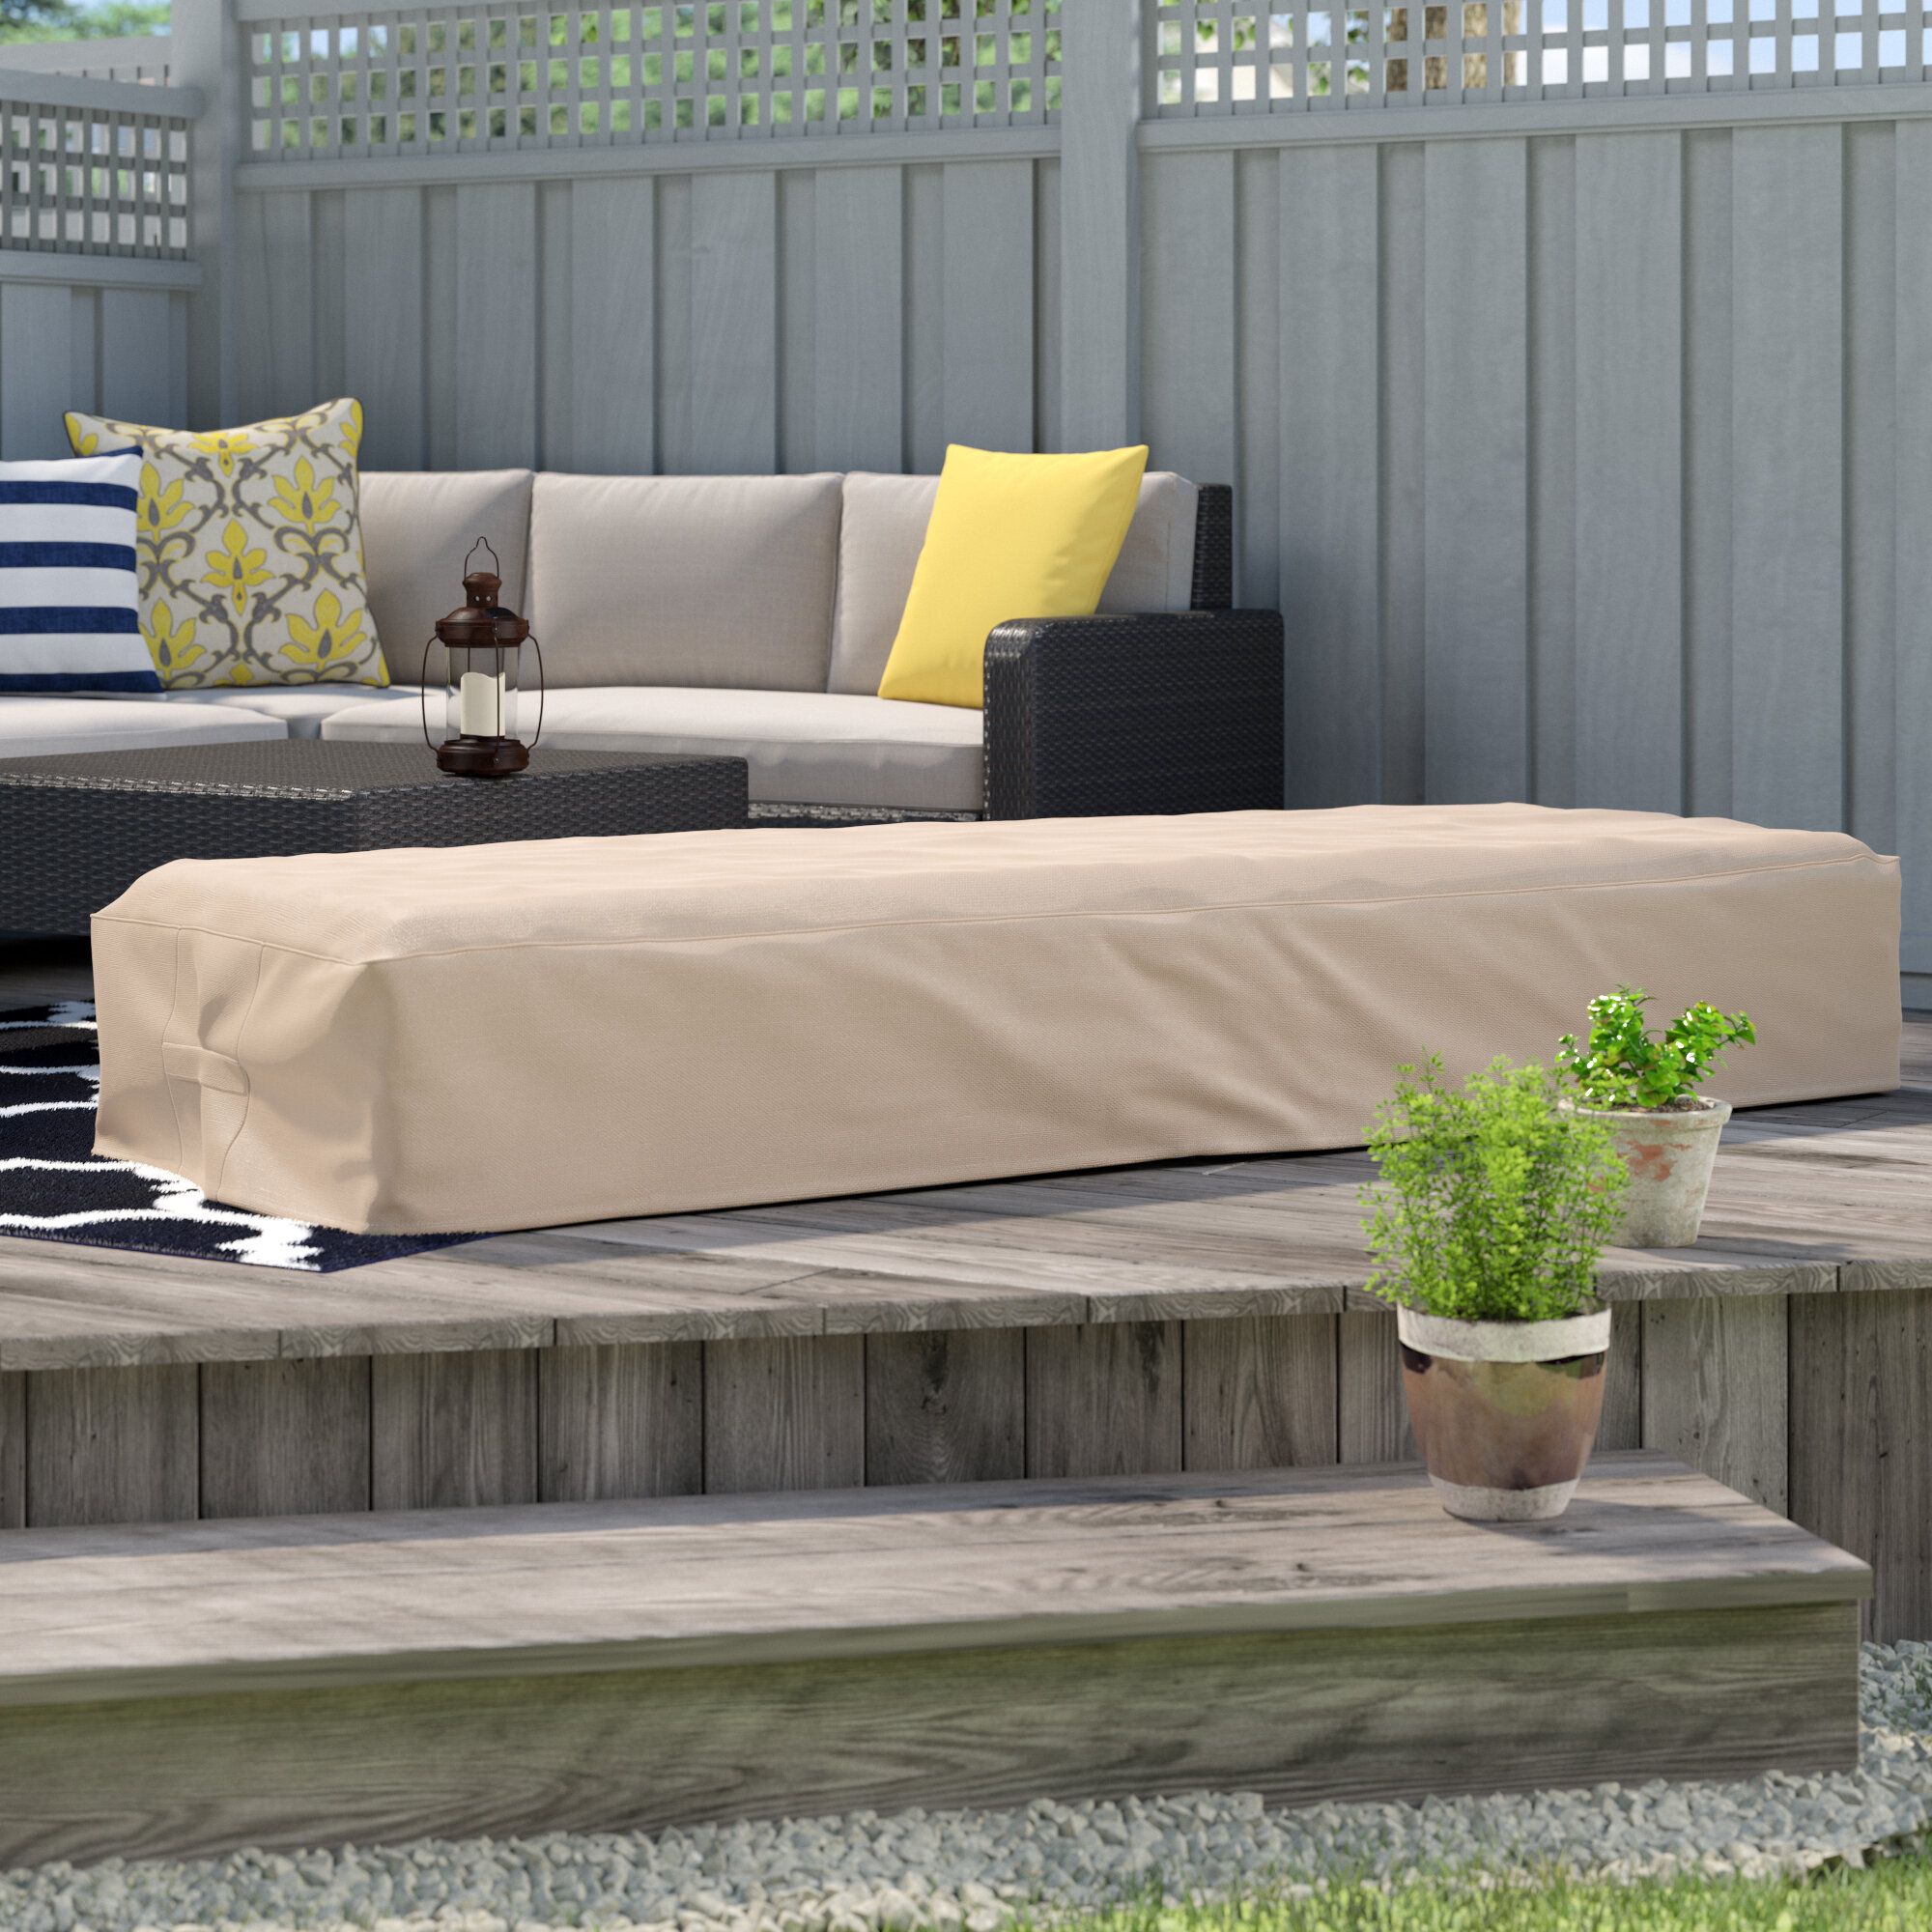 Freeport Park Outdoor Waterproof Chaise Lounge Cover Reviews Wayfair